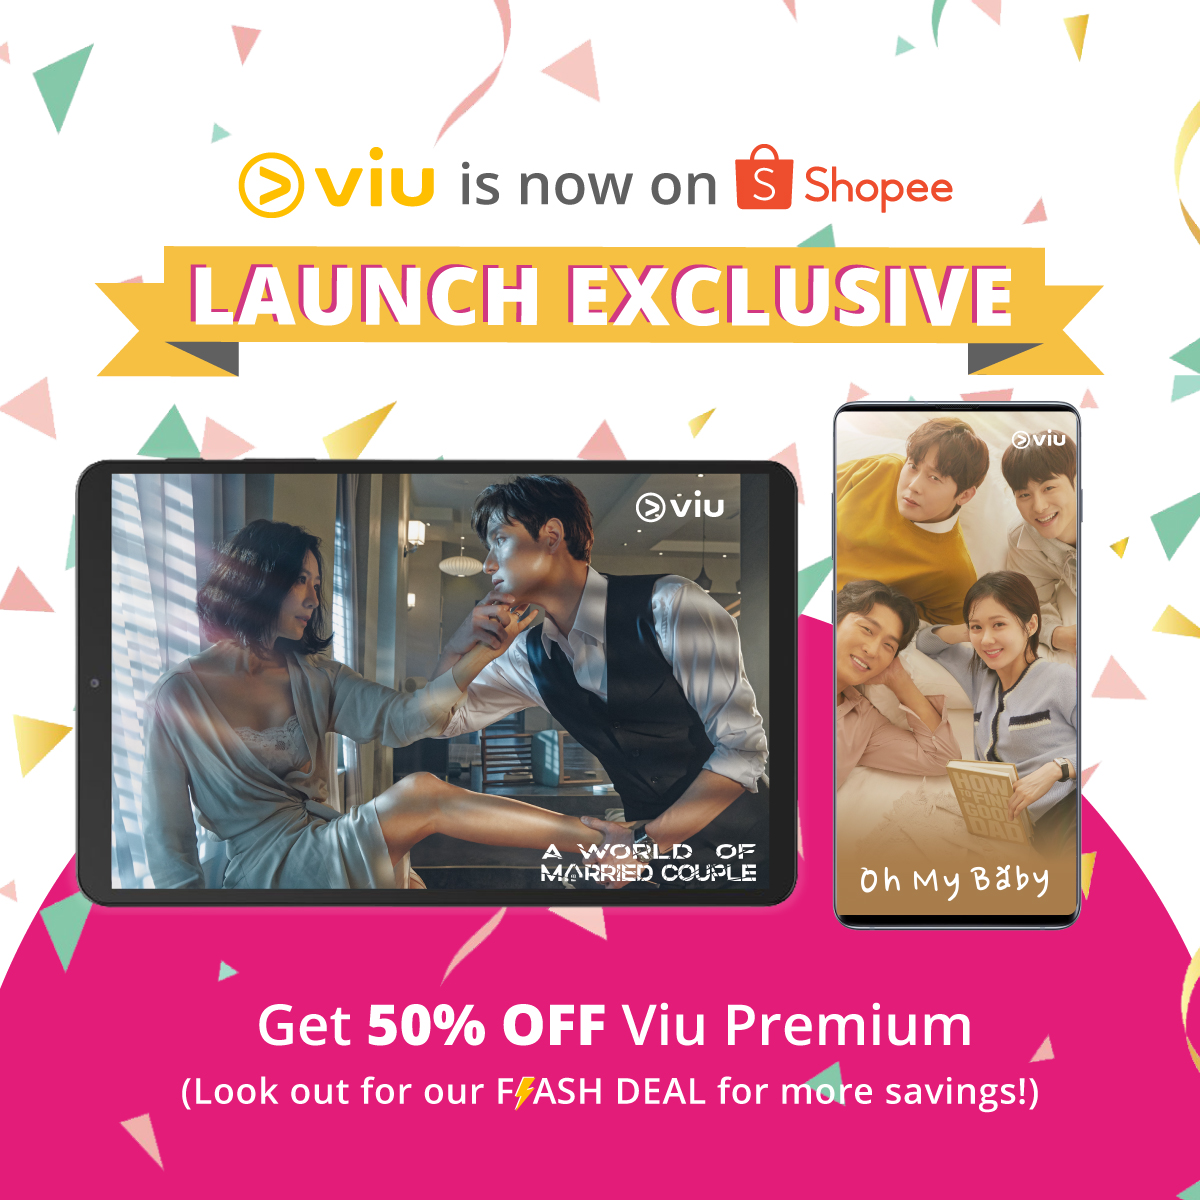 Have you heard? @ViuSG is on @ShopeeSG! And 6/12 months Viu Premium subscription is 50% off! Thats not all. Get an additional month FREE by filling in this form (bit.ly/ViuxShopee30Fr…) after purchase, with the promo code sgxclusive30! #ViuOnShopee #StayHomeWithViu